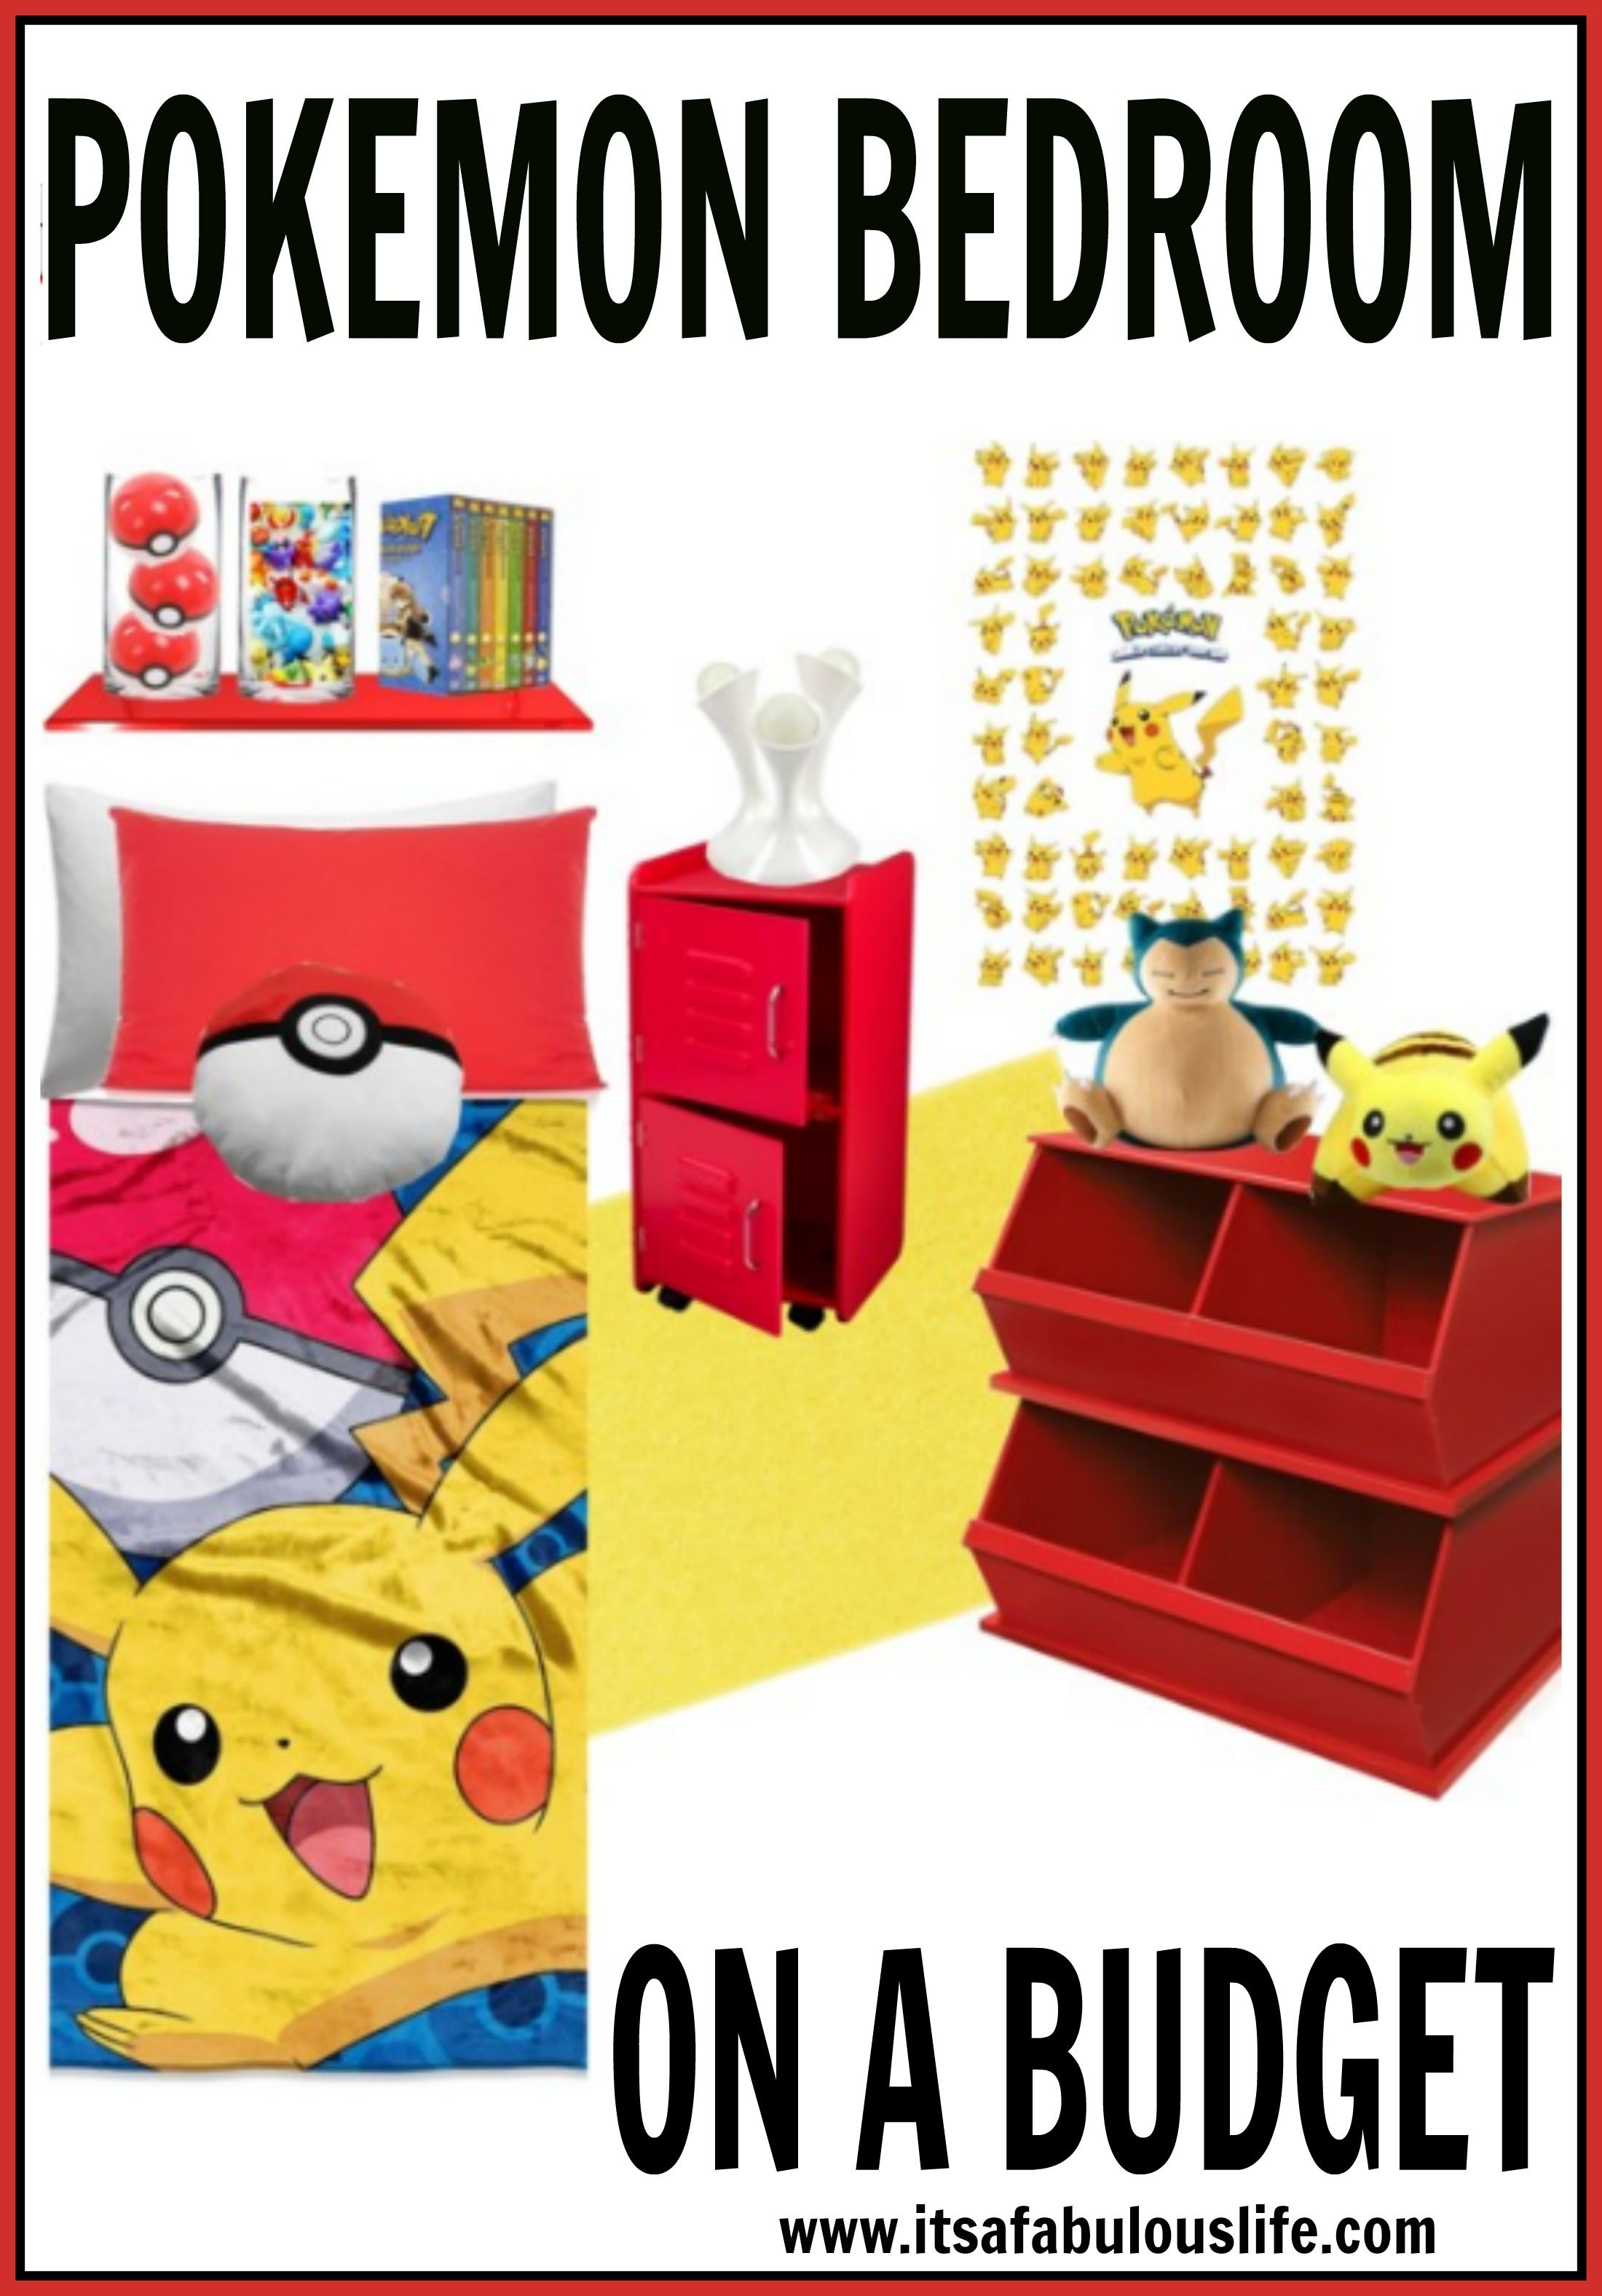 Pokemon Bedroom Ideas On A Budget | Pokémon, Budgeting and Bedrooms